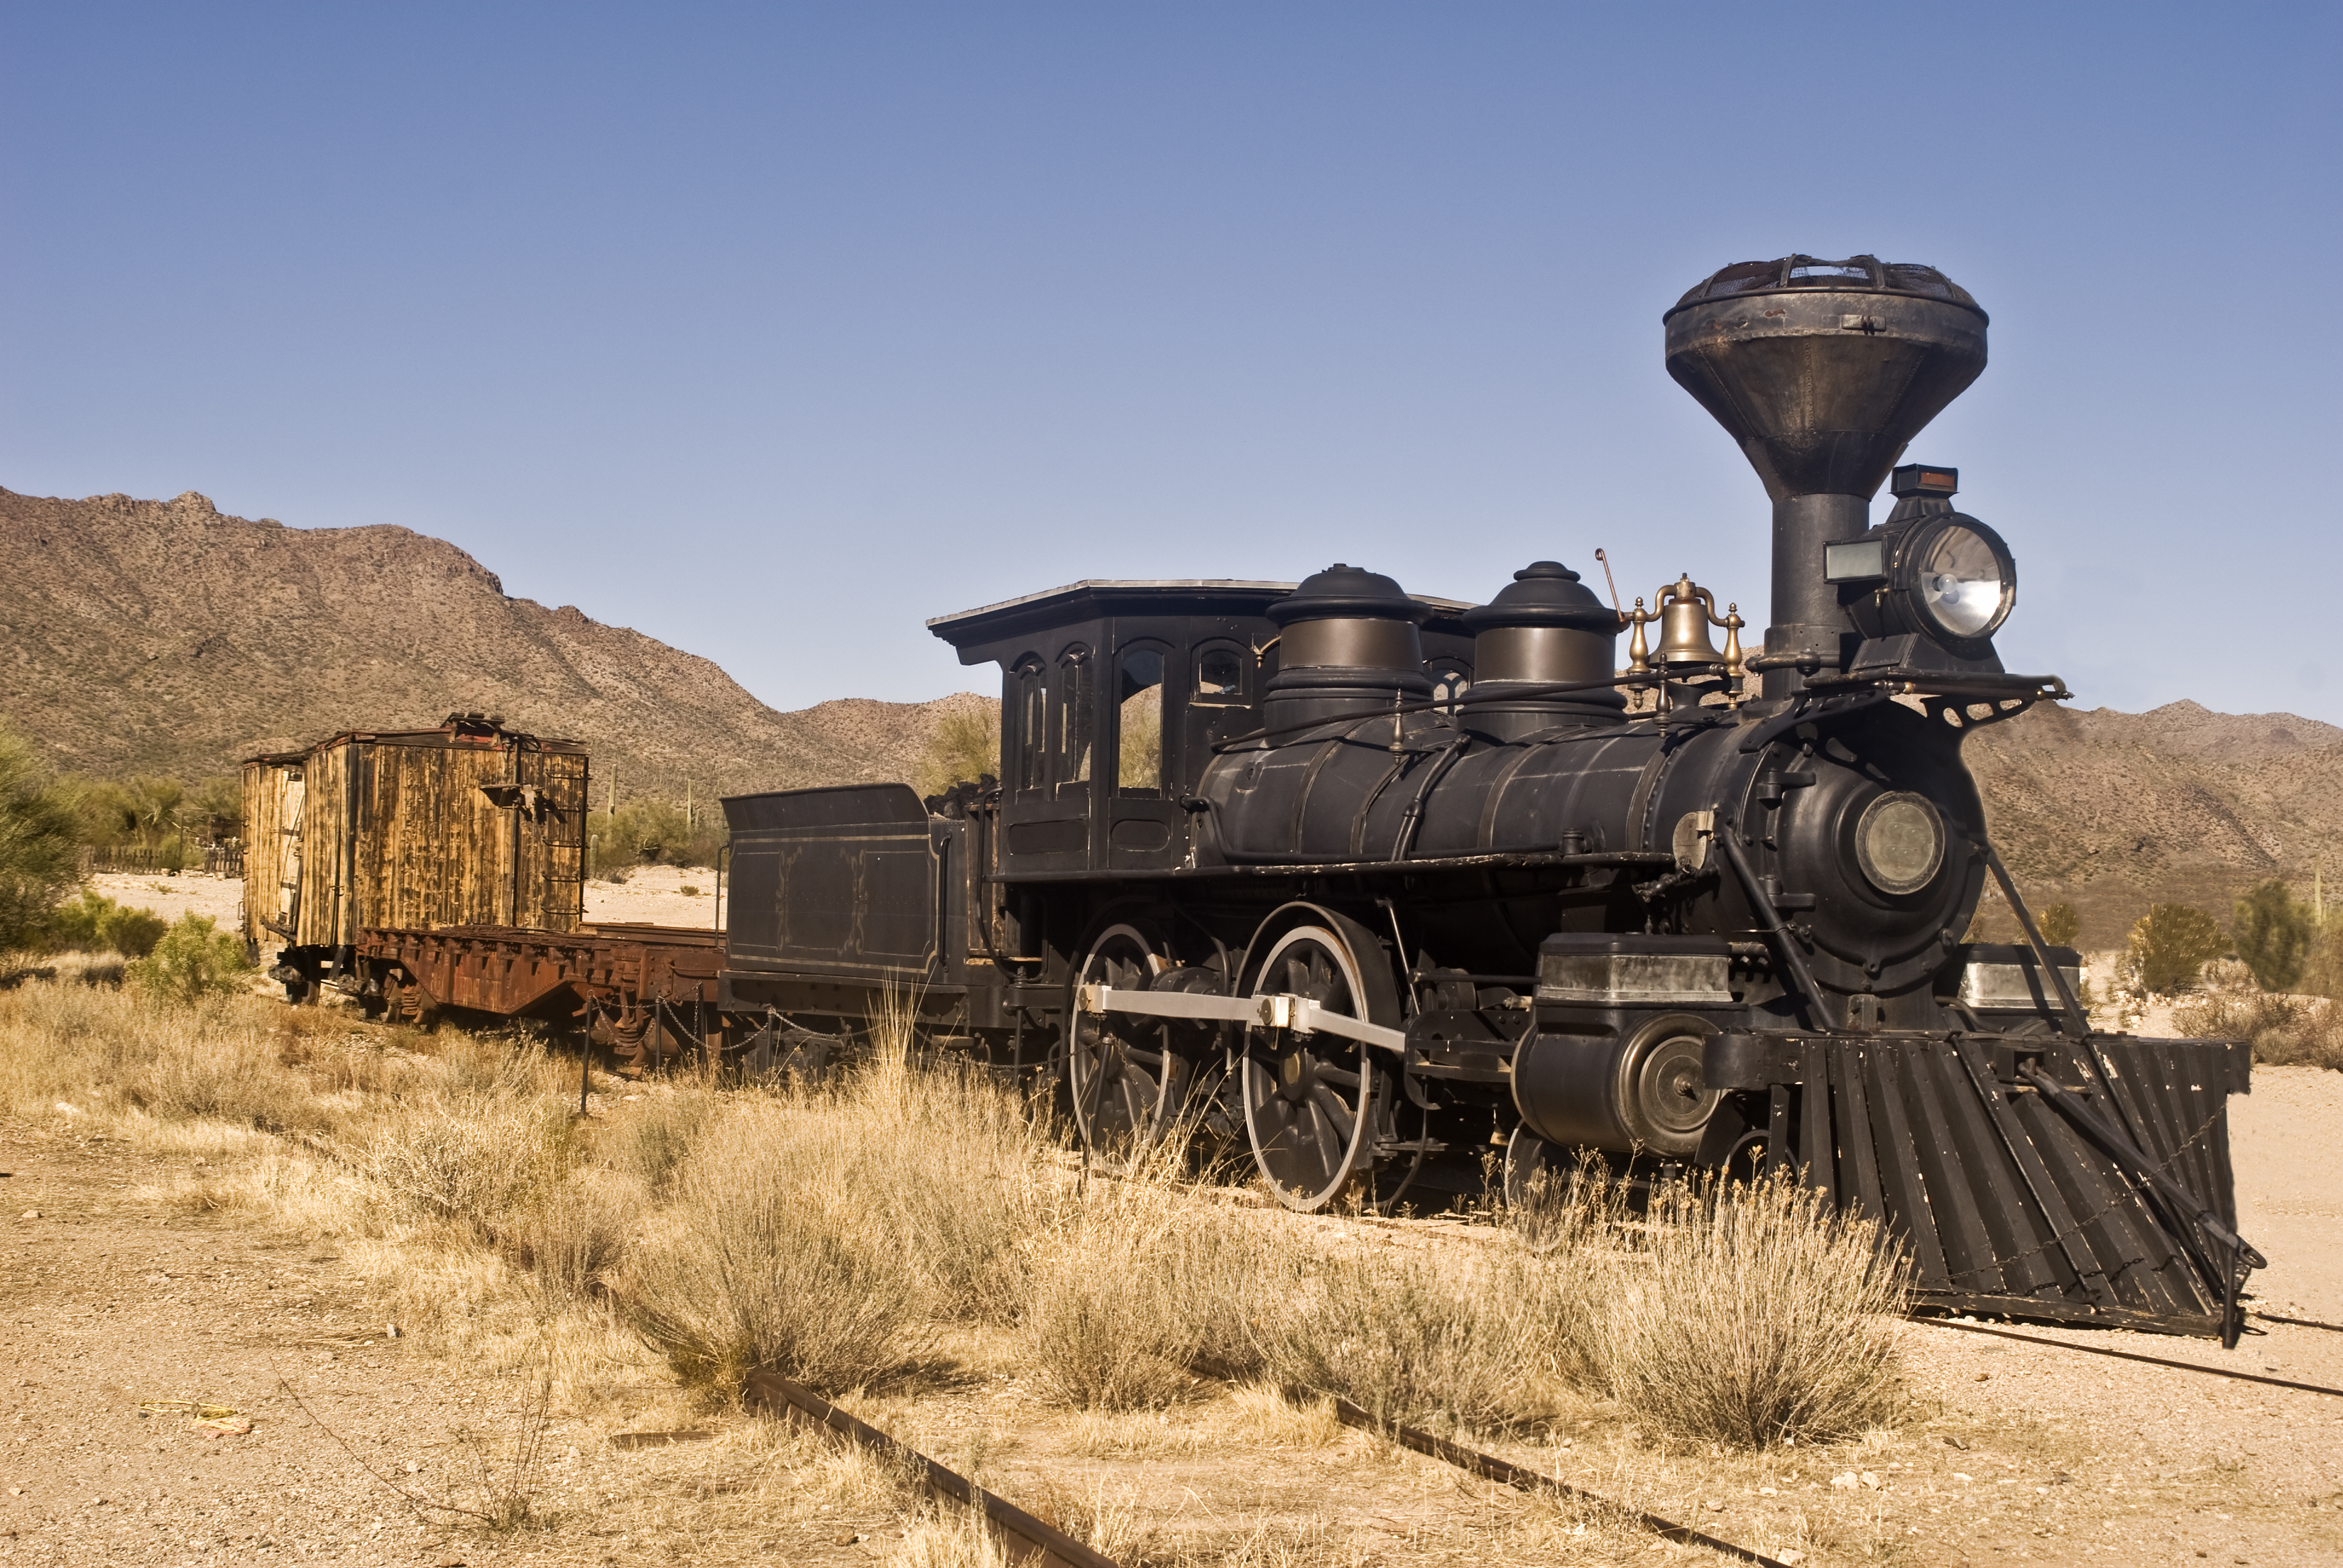 Old steam locomotive in desert setting.